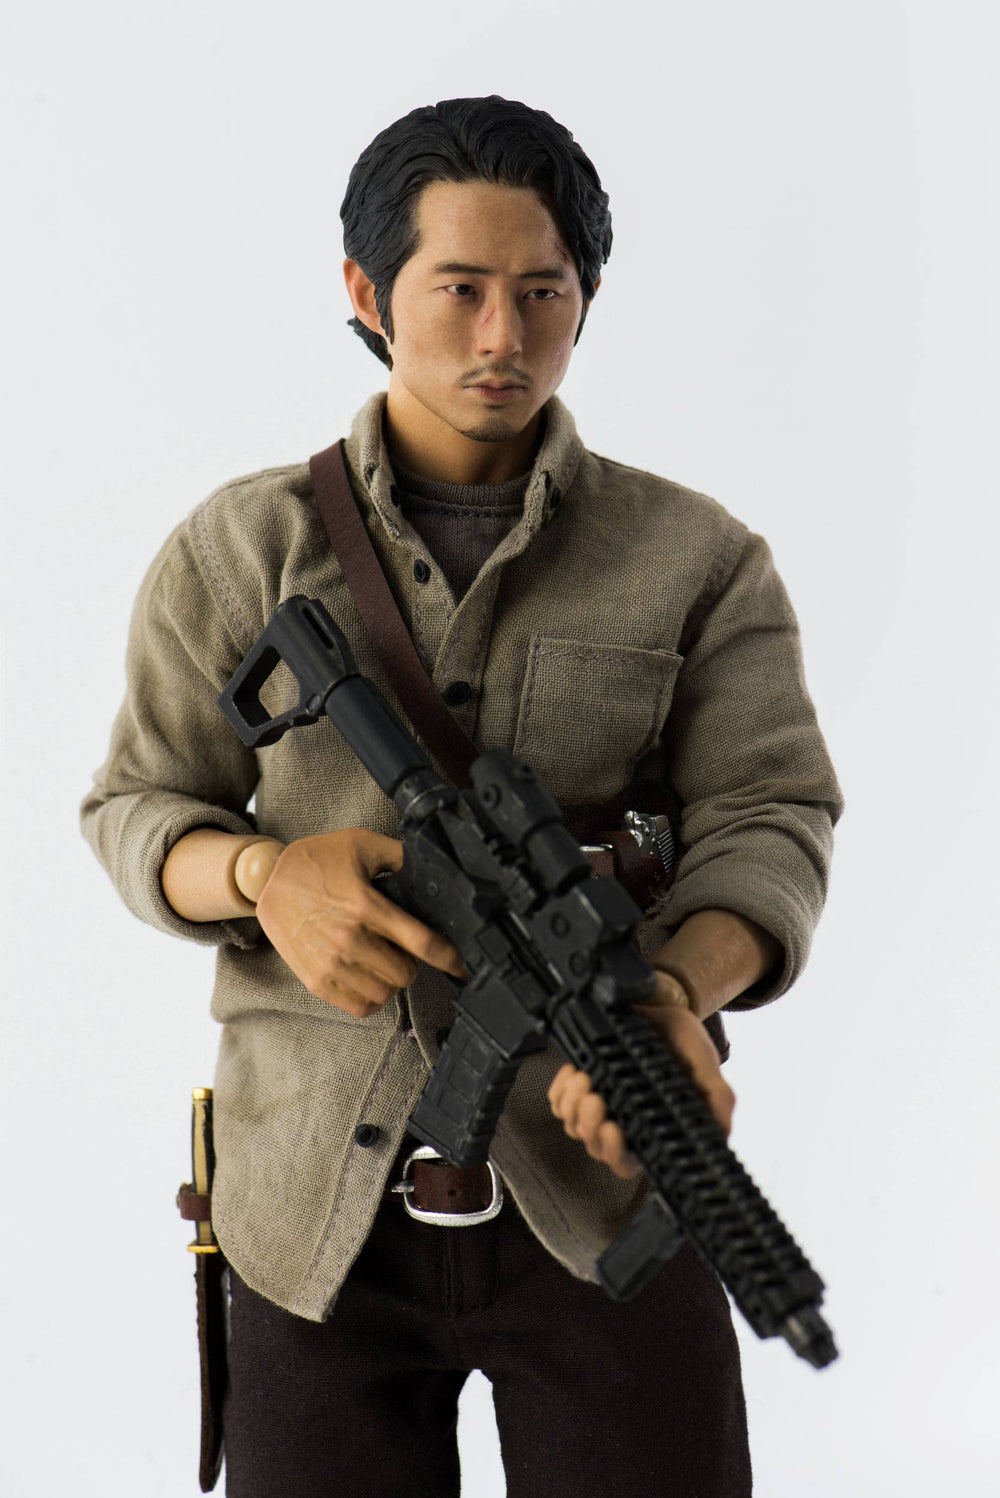 Threezero The Walking Dead Glenn Rhee 1/6 Action Figure